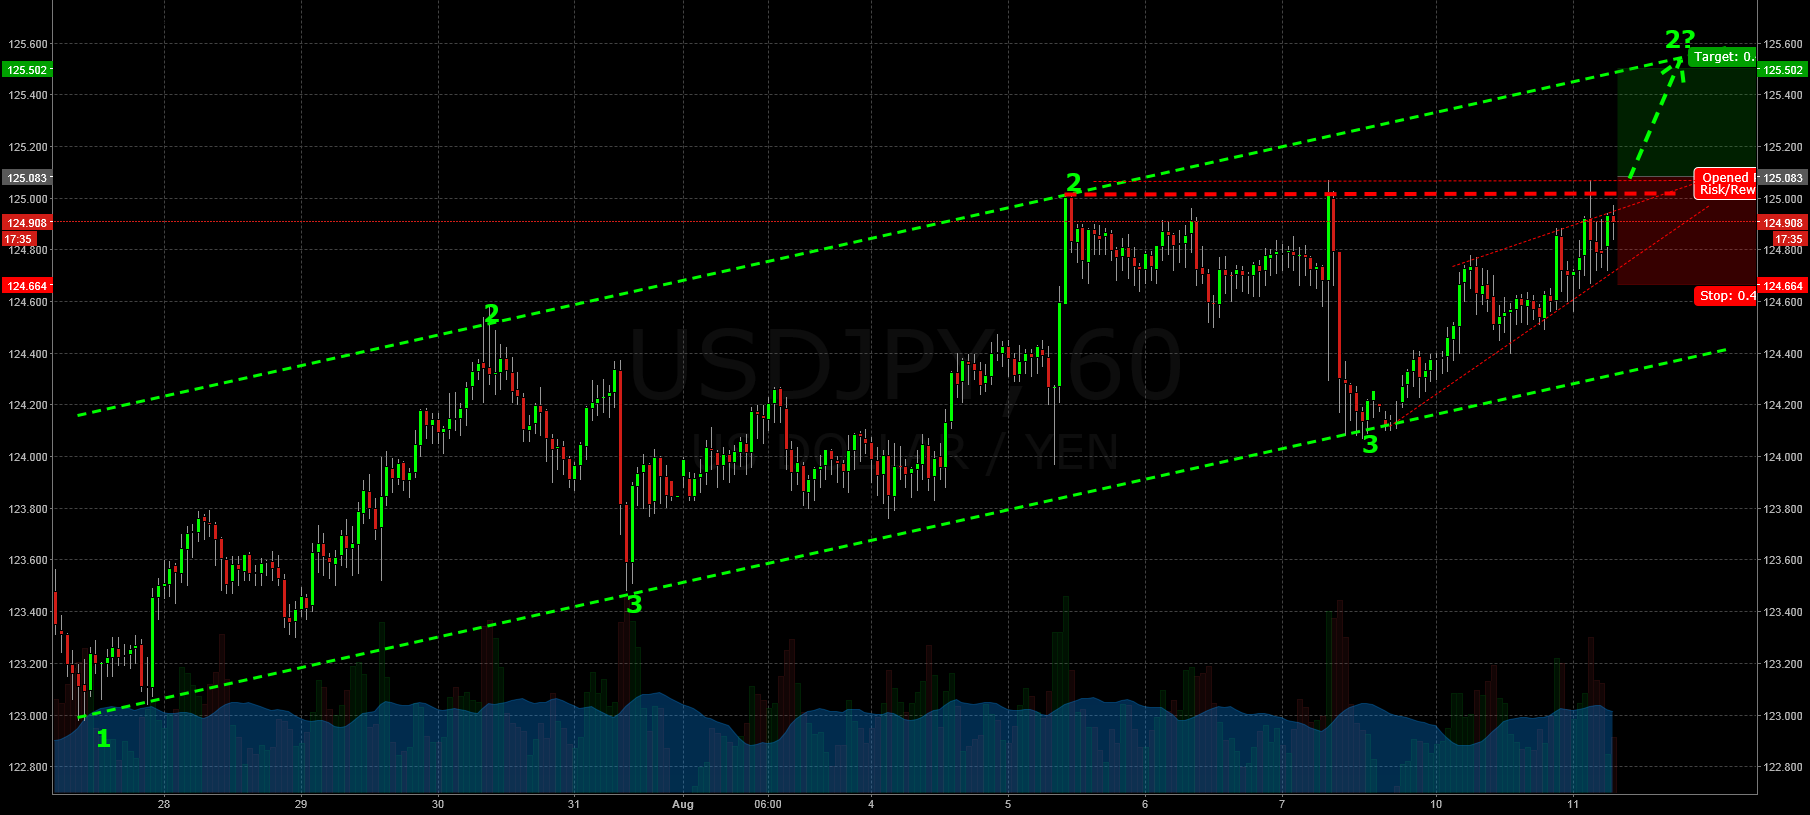 Trying to catch the Breakout: Shortterm Trade preparation